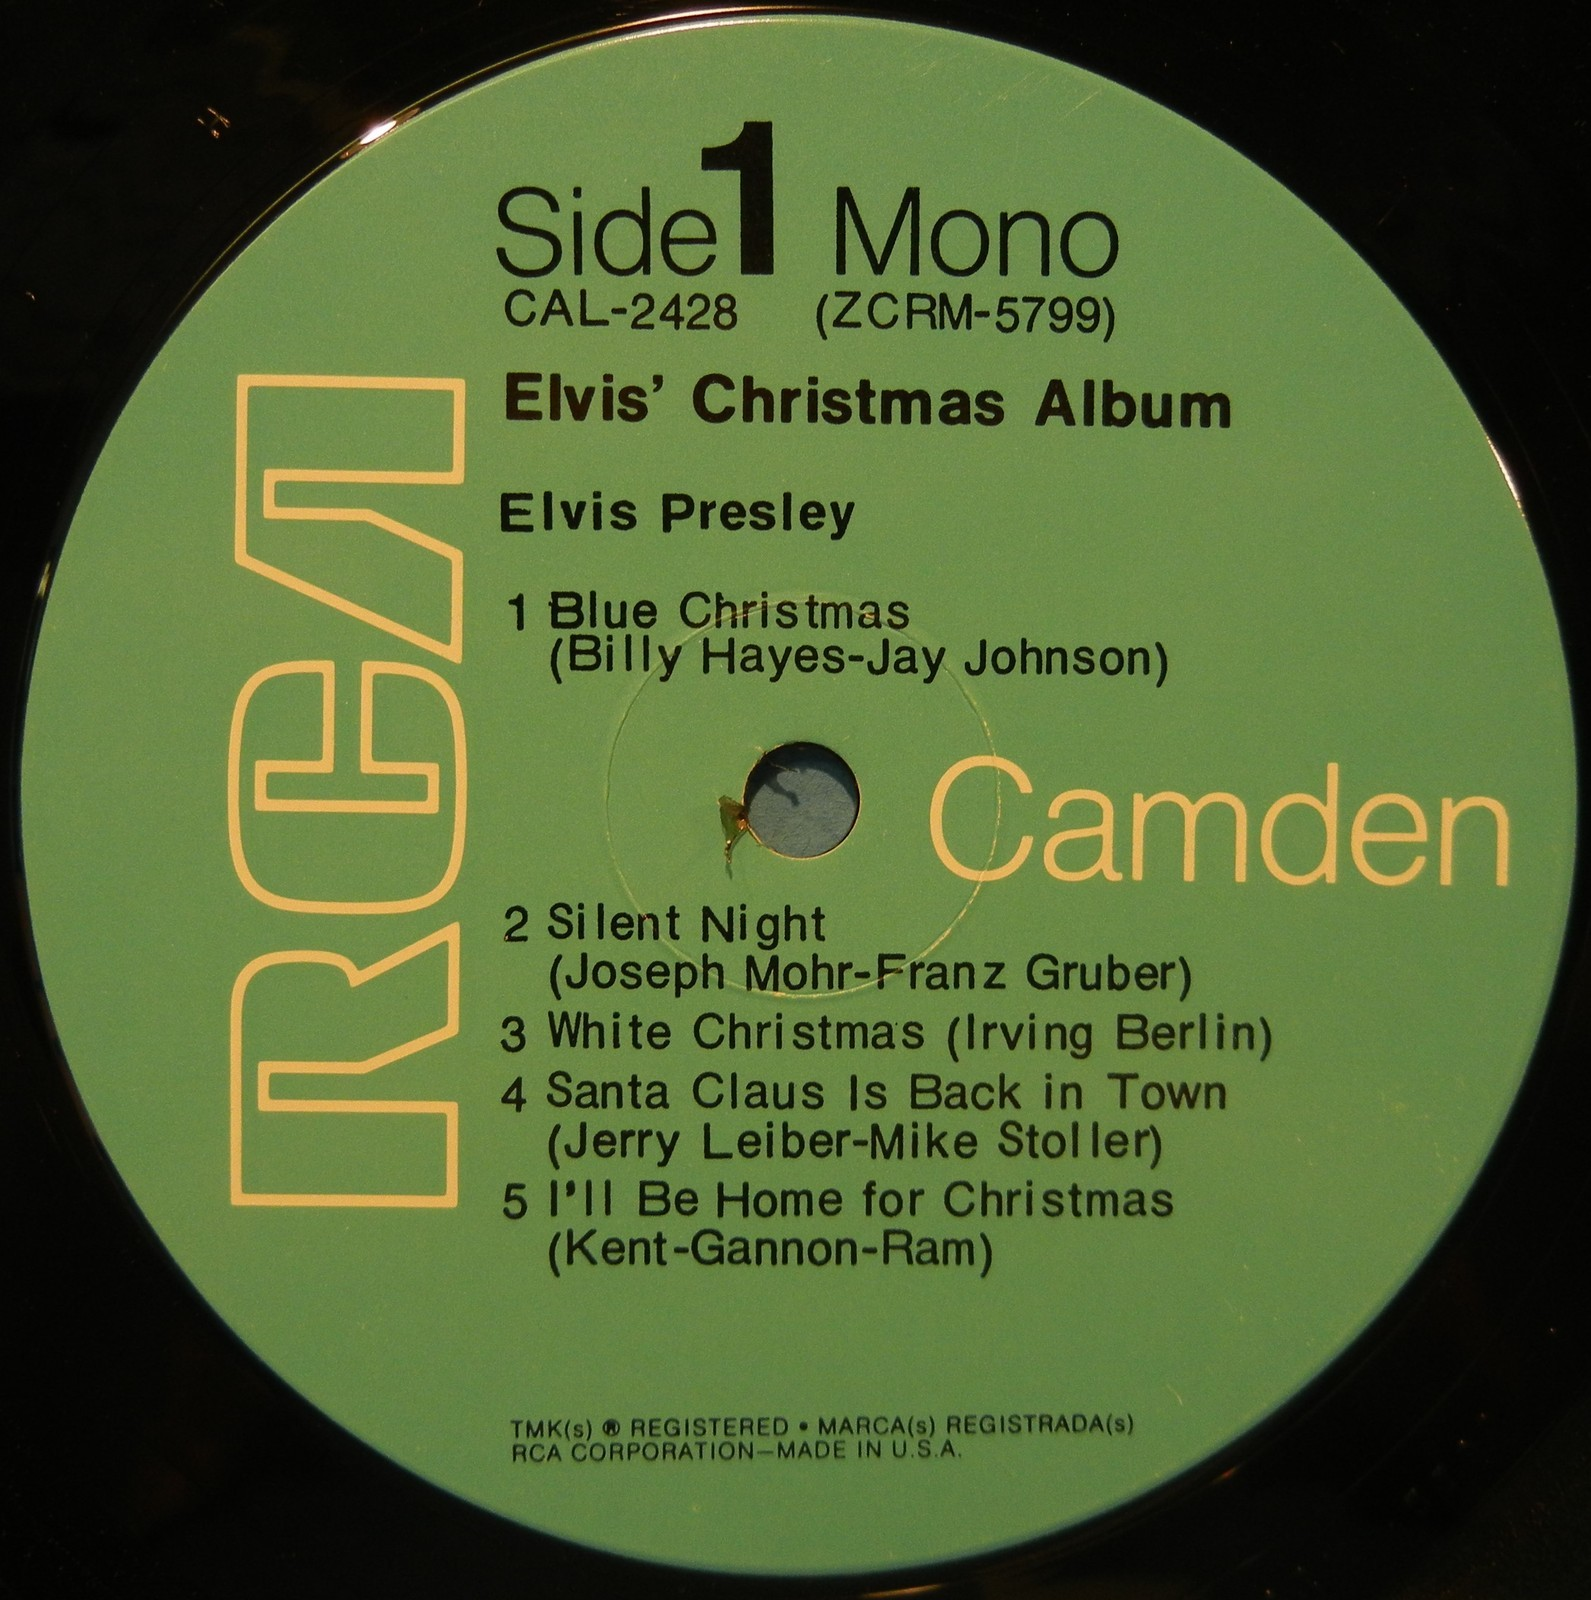 ELVIS' CHRISTMAS ALBUM Cal-2428c04j3i